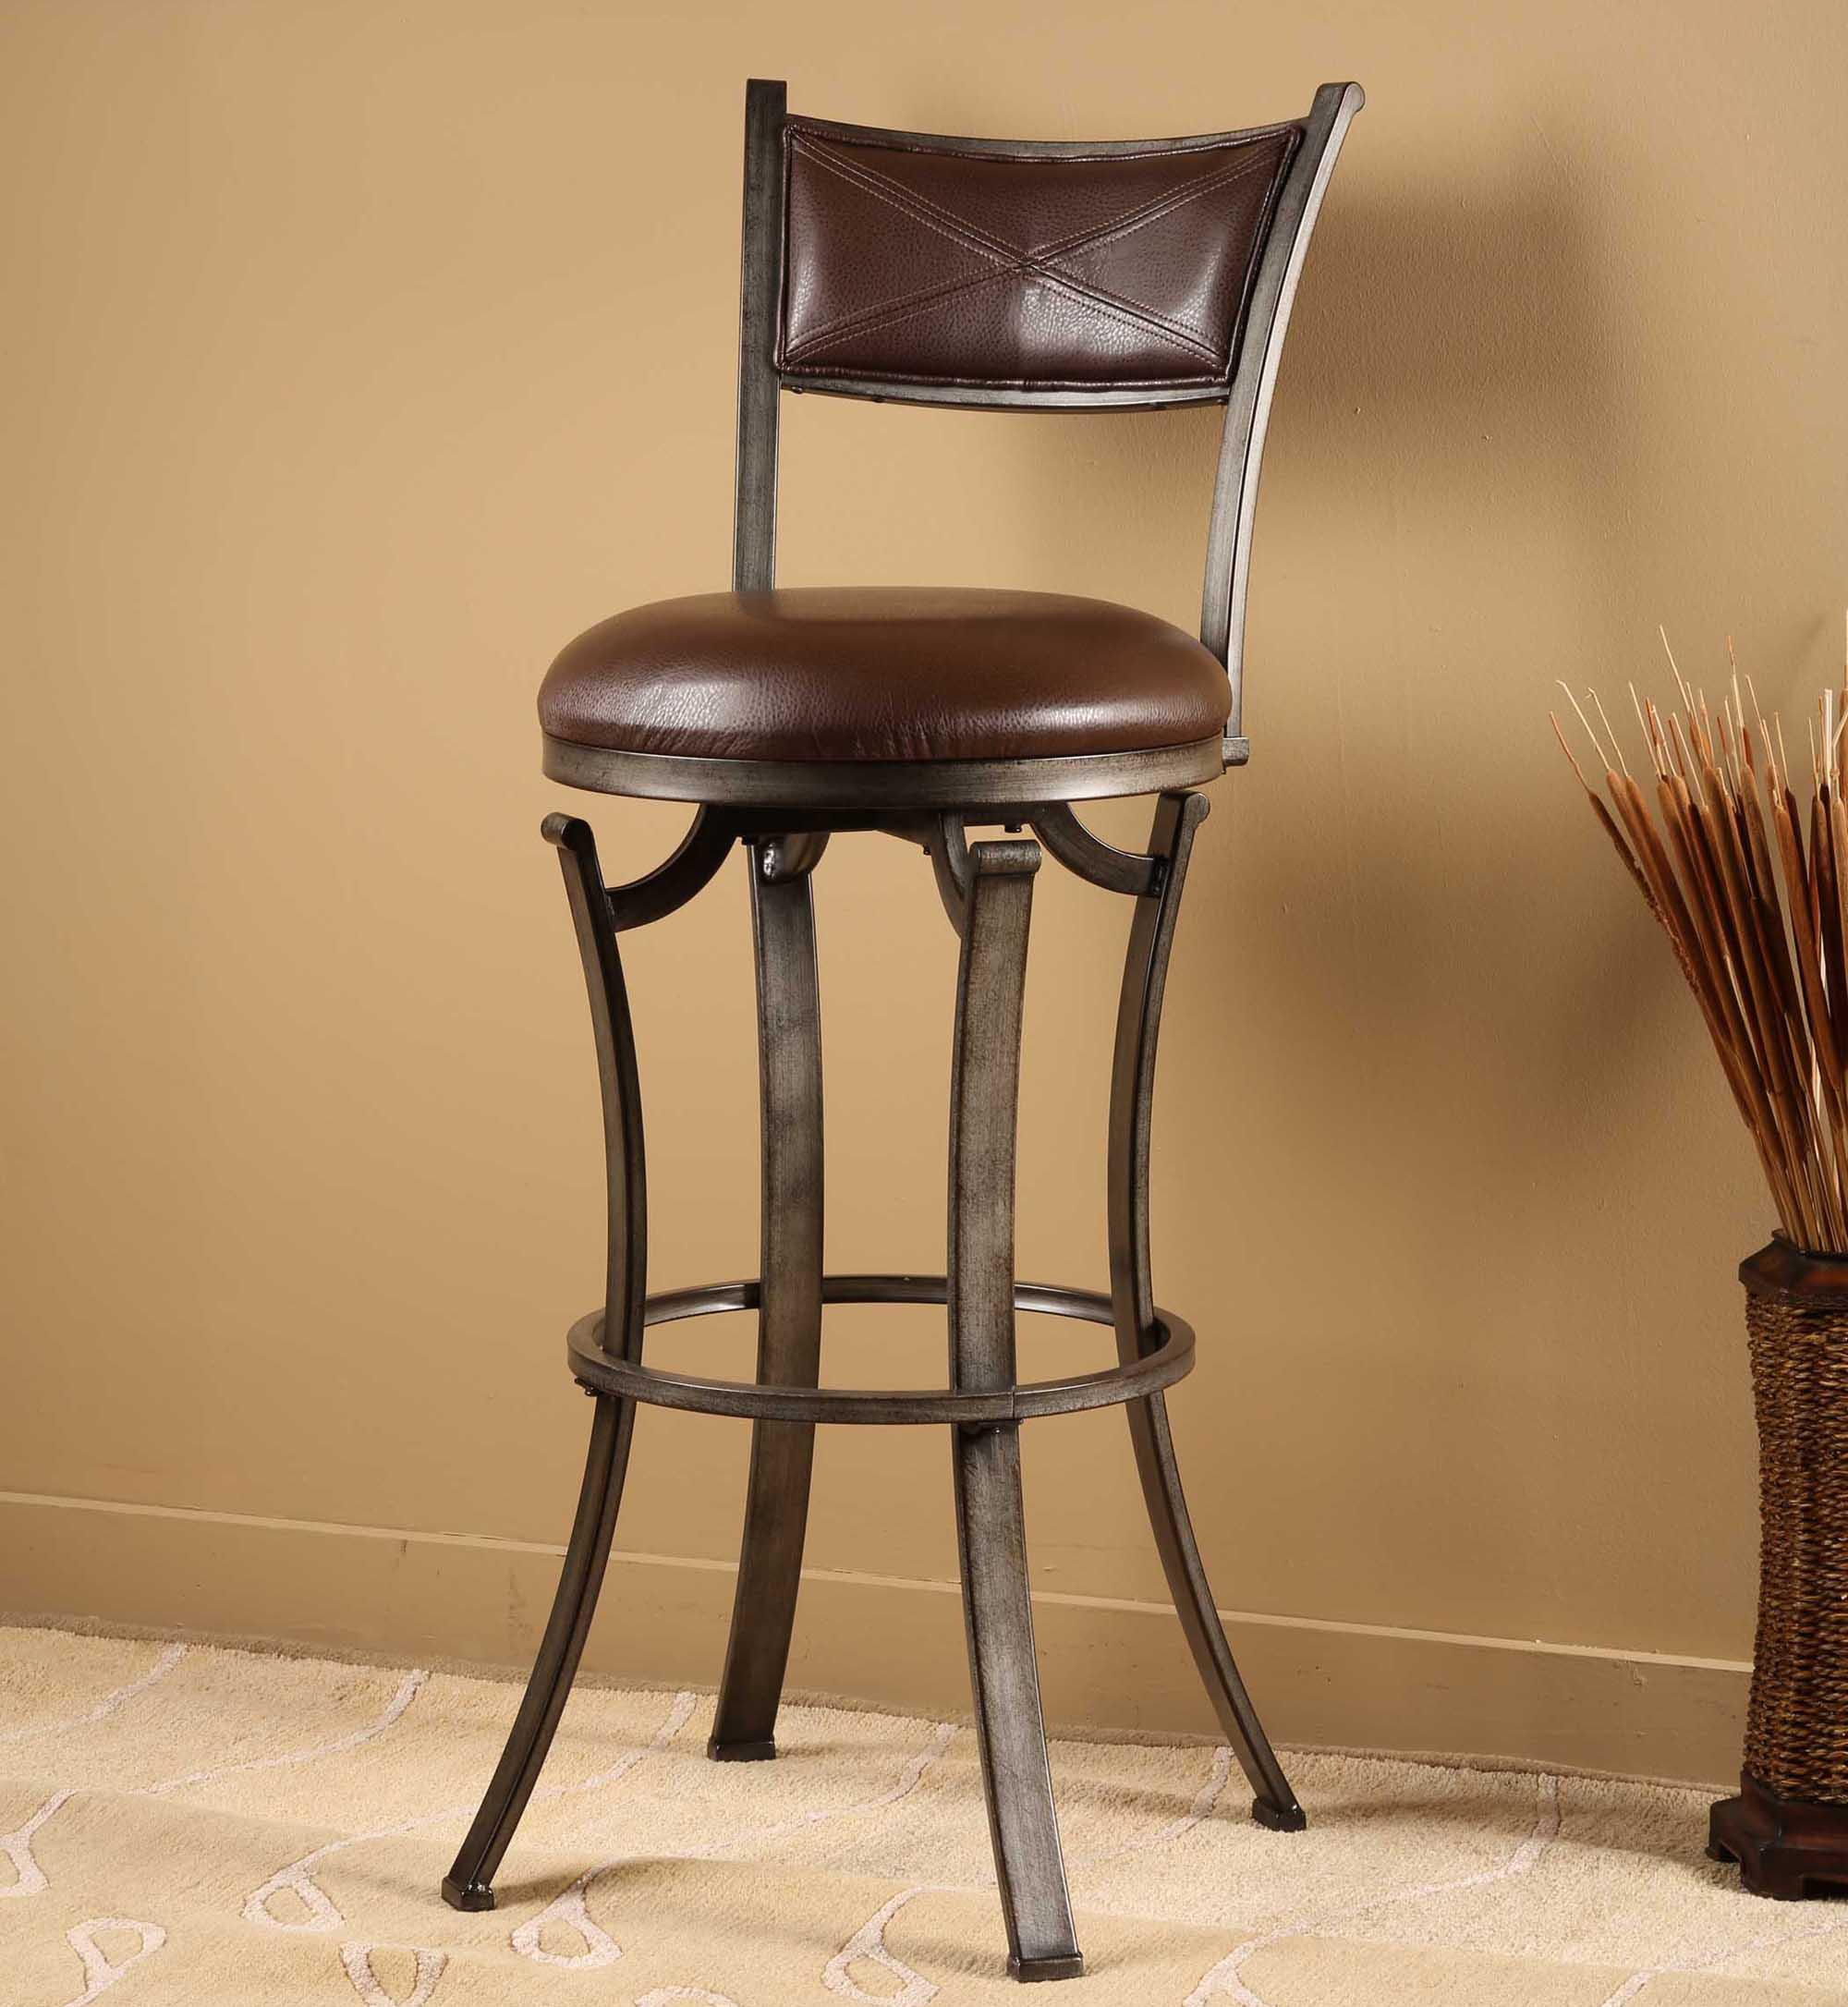 Hillsdale Metal Stools Drummond Swivel Counter Stool - Item Number: 4919-826